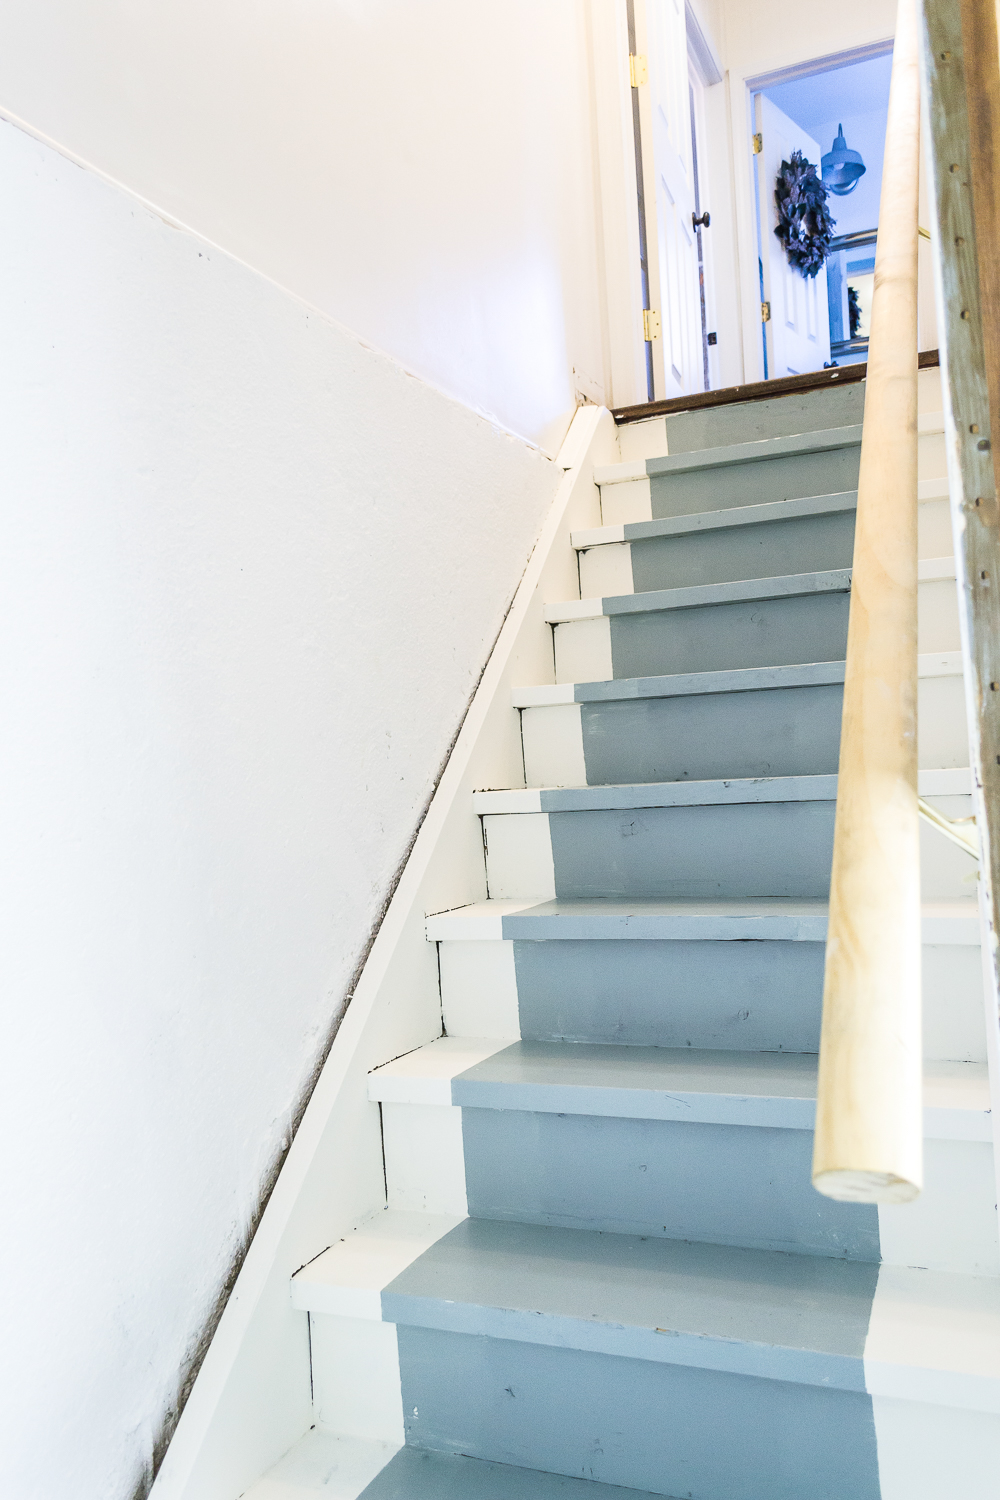 How to paint basement stairs and give wood stairs a fresh farmhouse style. Paint your stairs in a few easy steps!